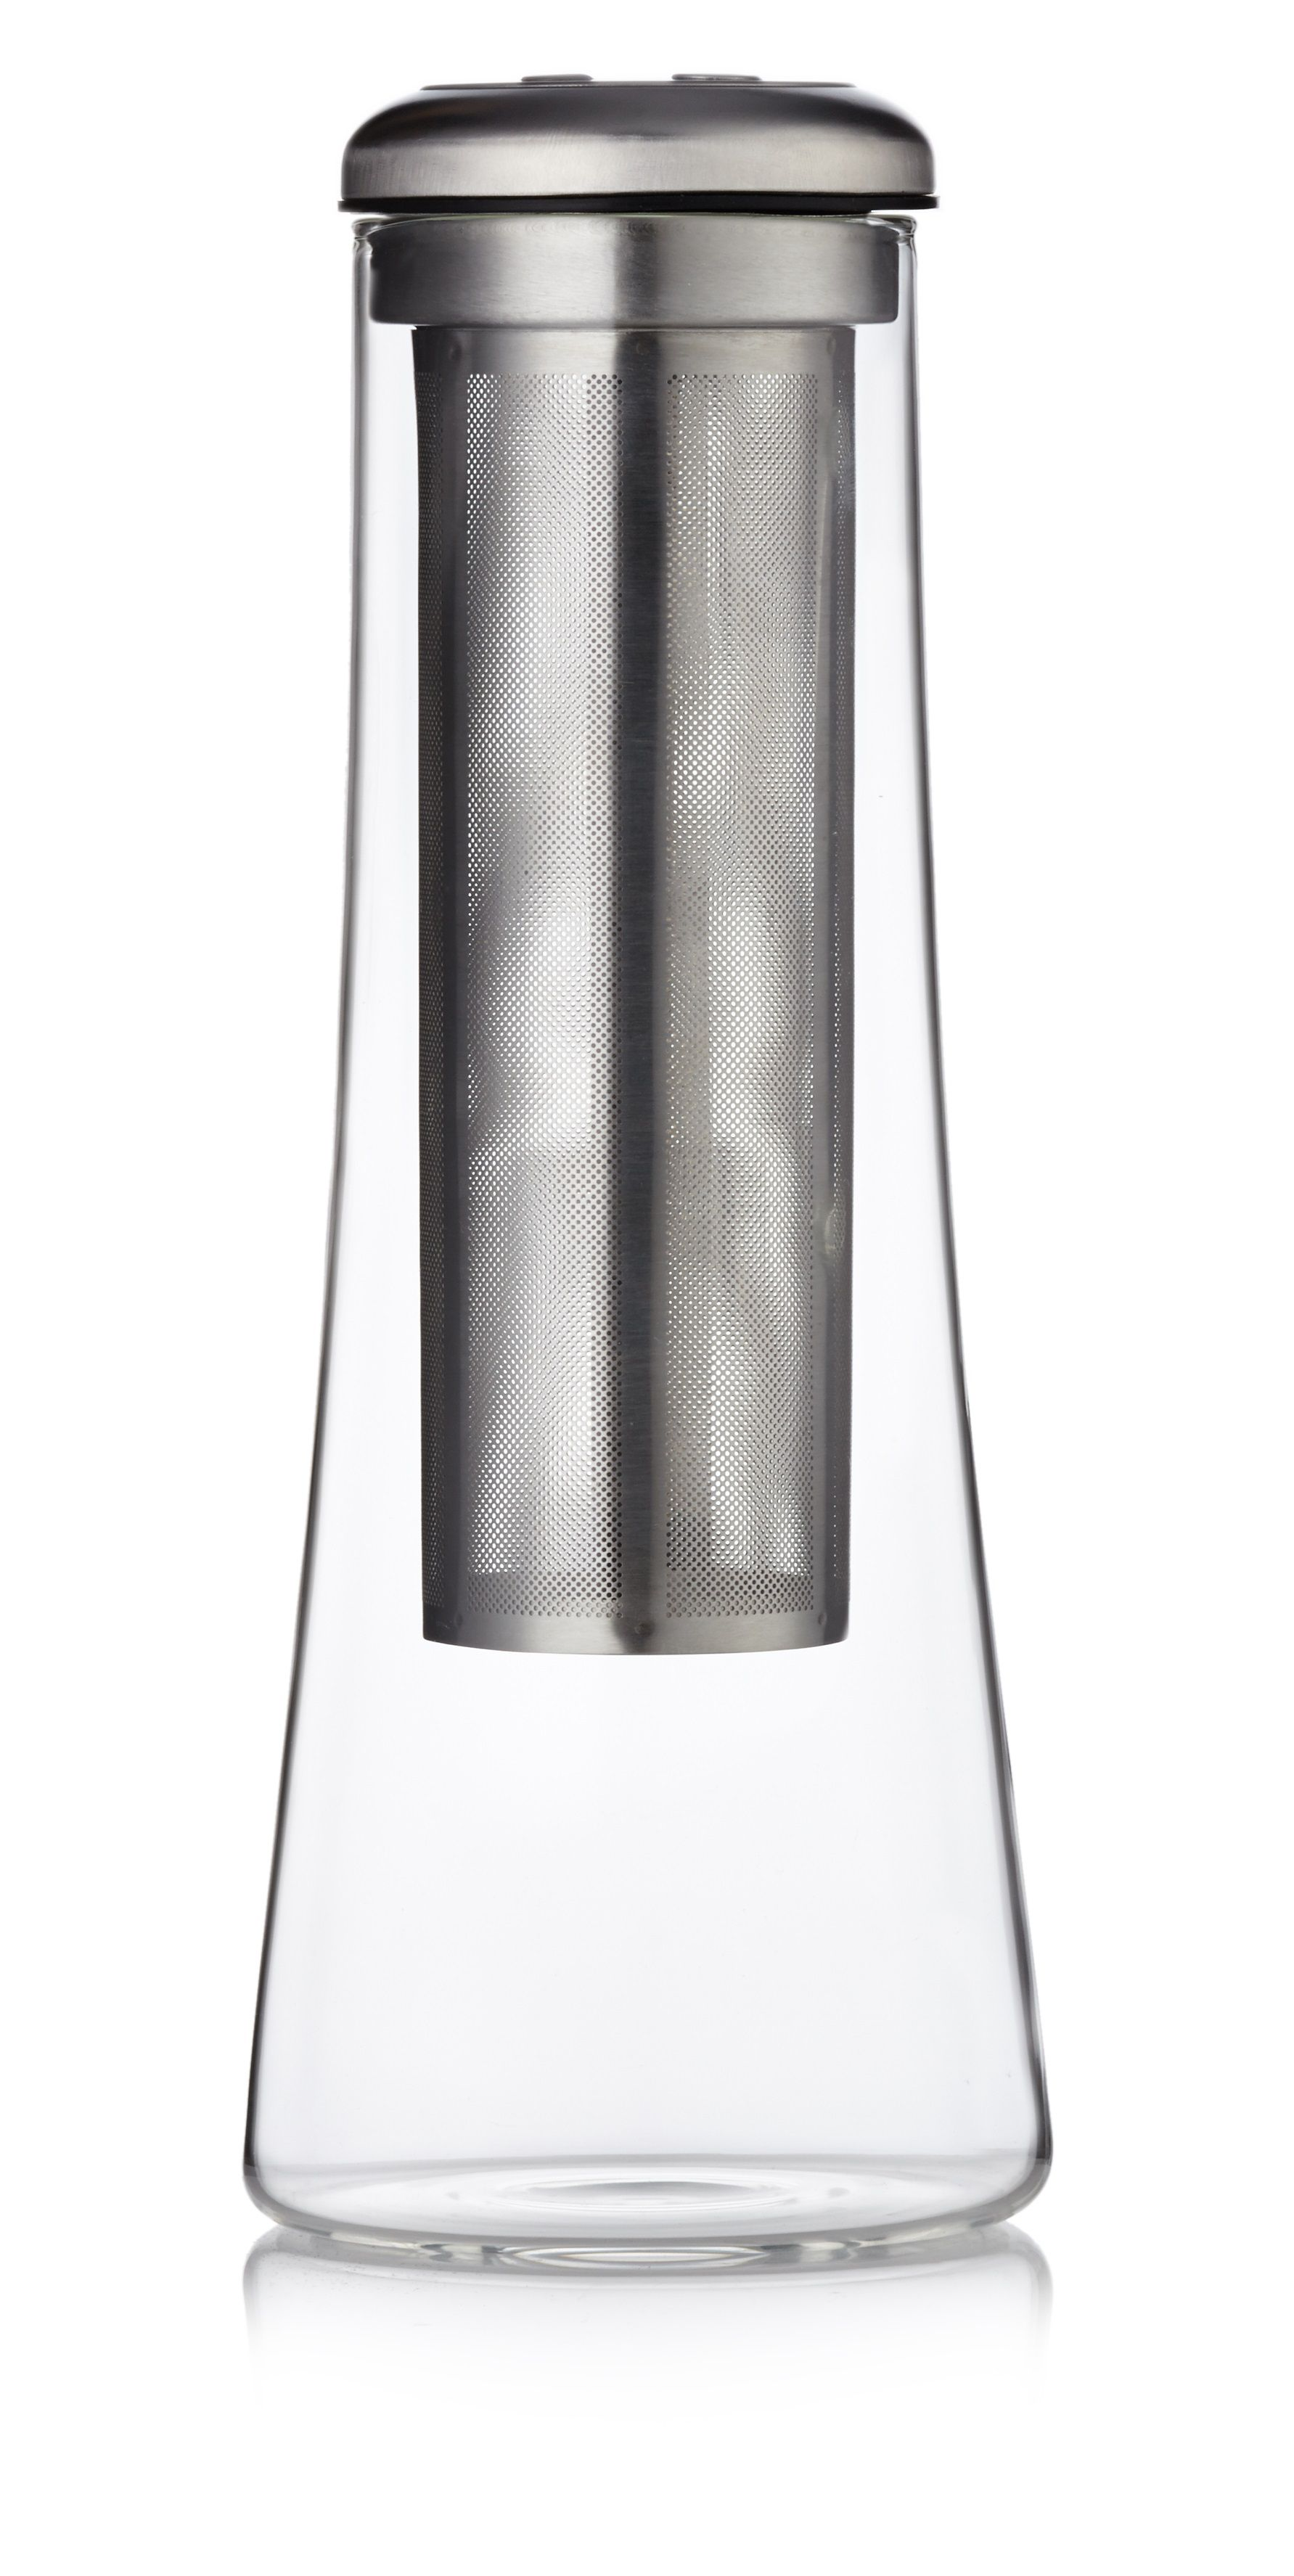 Image of Barista & Co Glass Cold Brew Carafe, Electric Steel